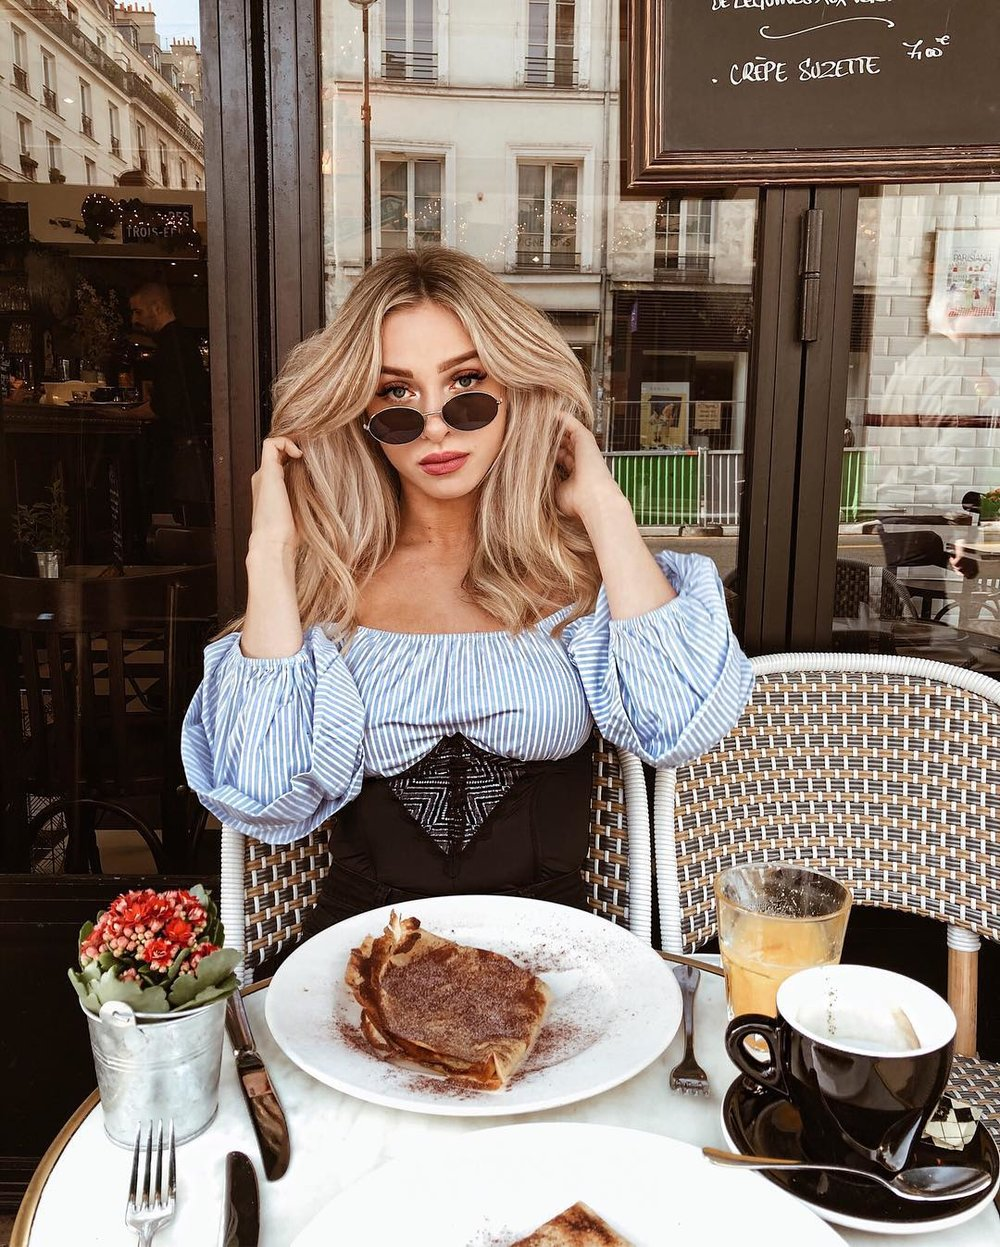 @thestyleseed at a cafe in Paris with a crepe.